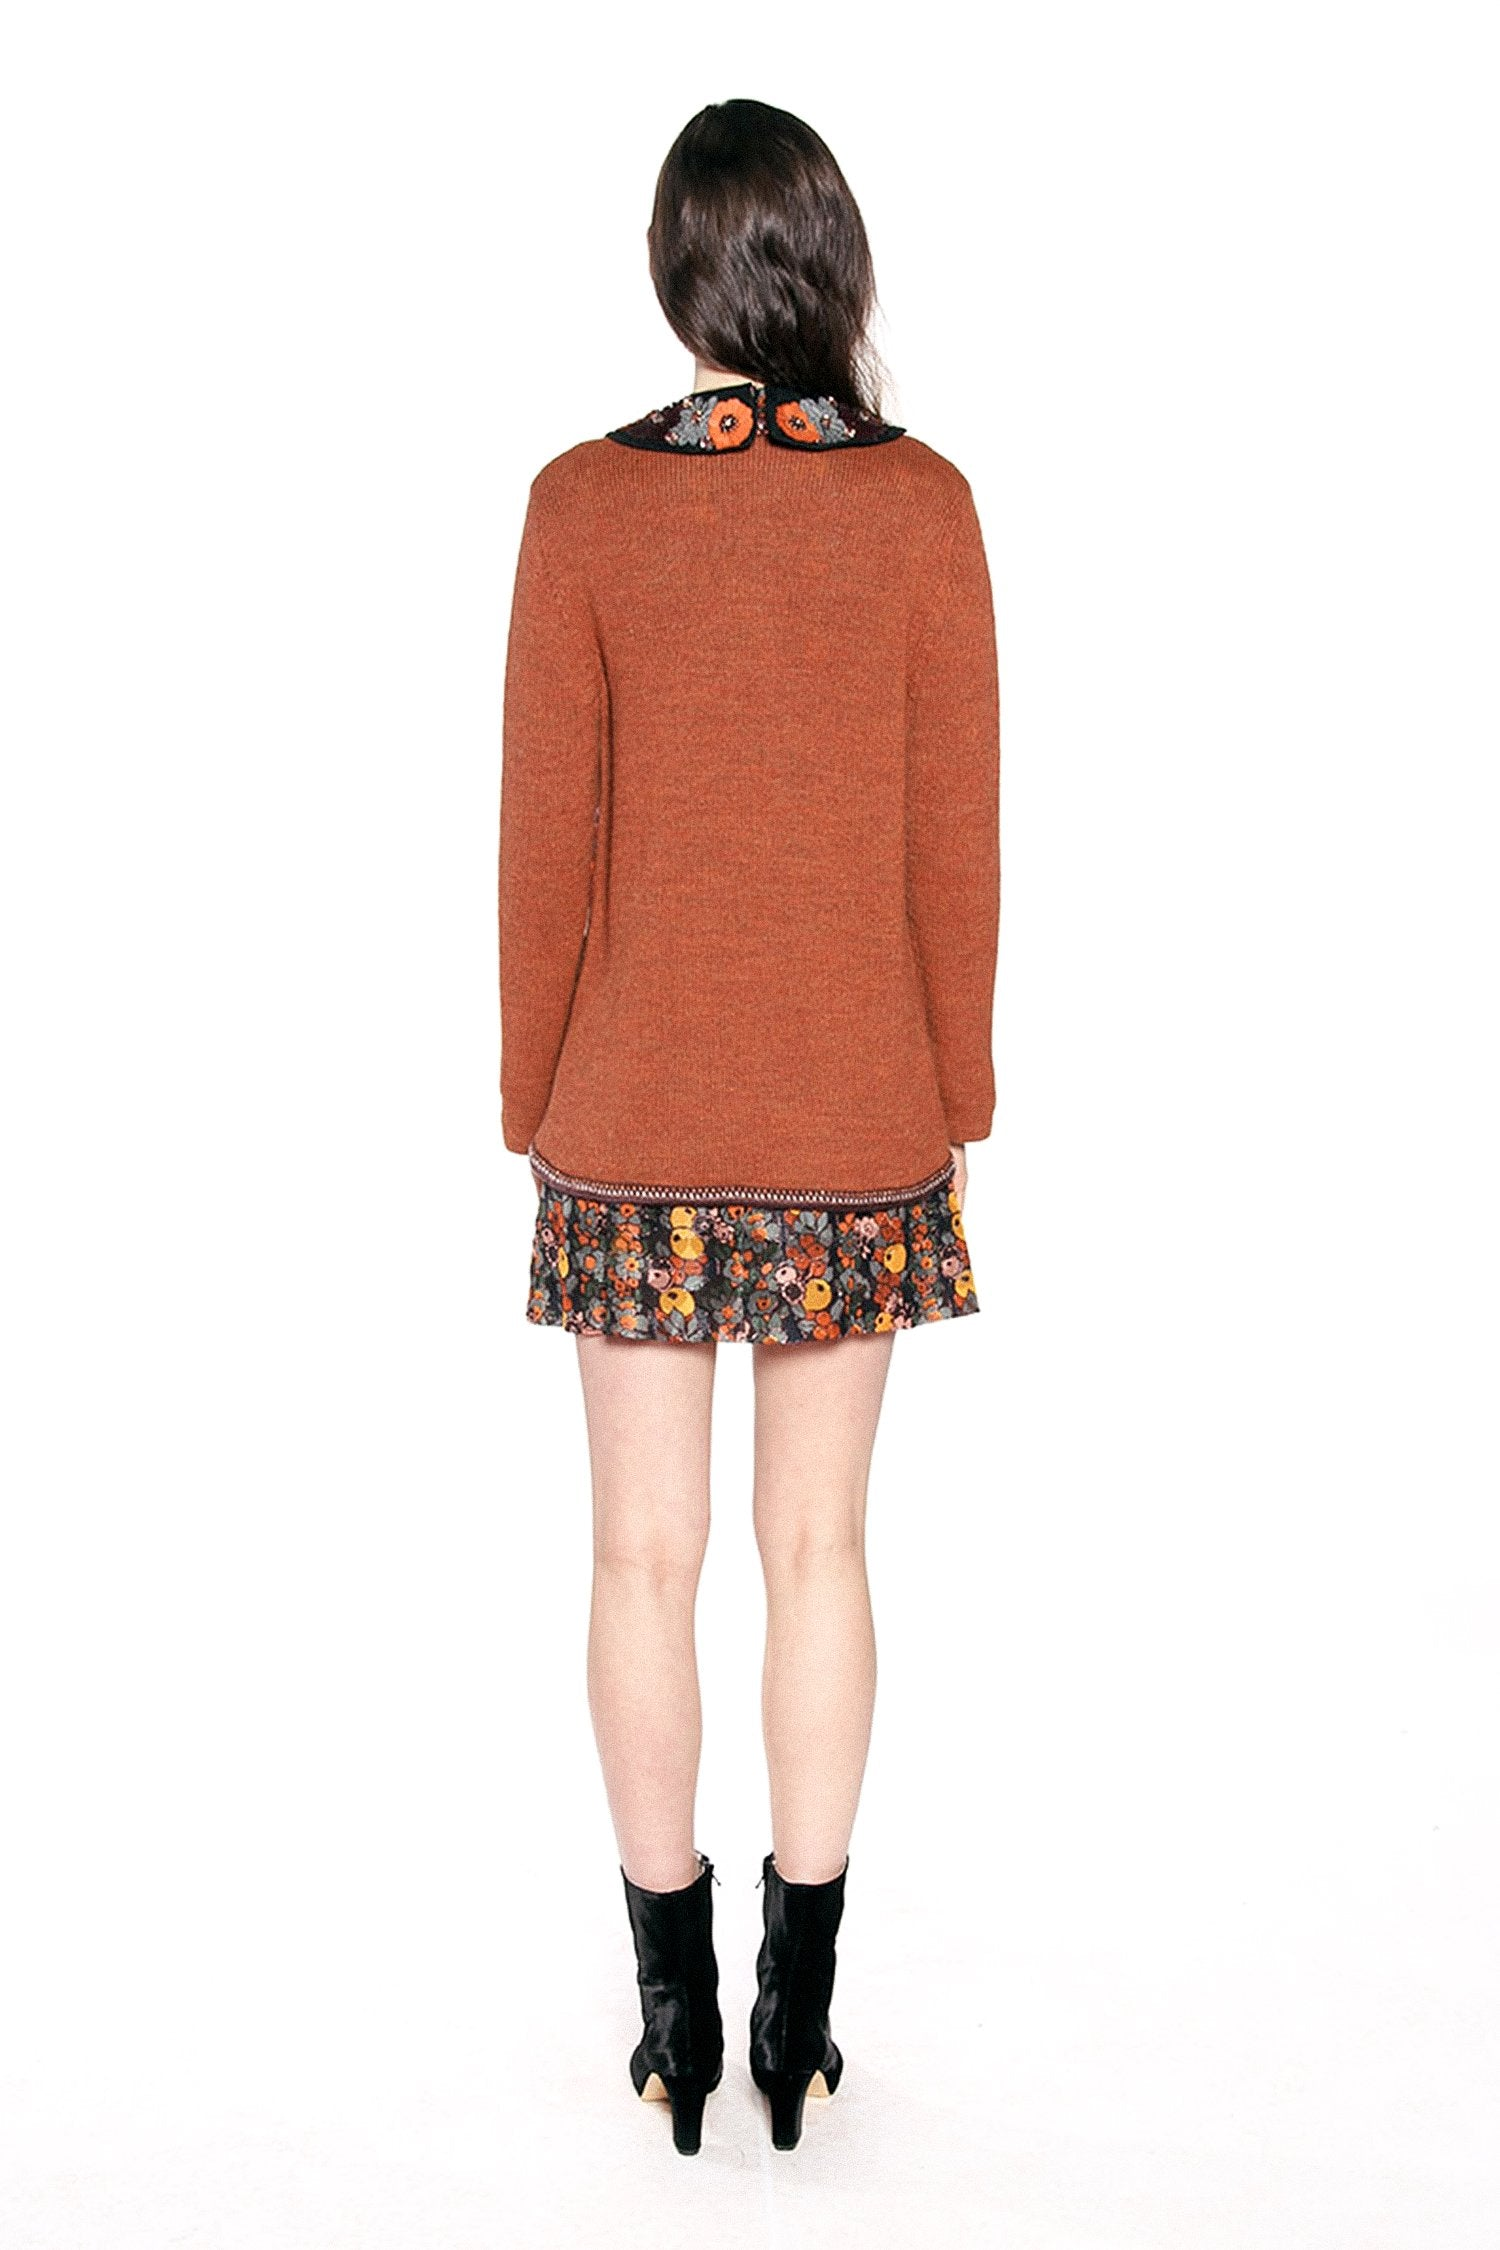 James Coviello for Anna Sui <br> Floral Embroidery Knit Cardigan </br>